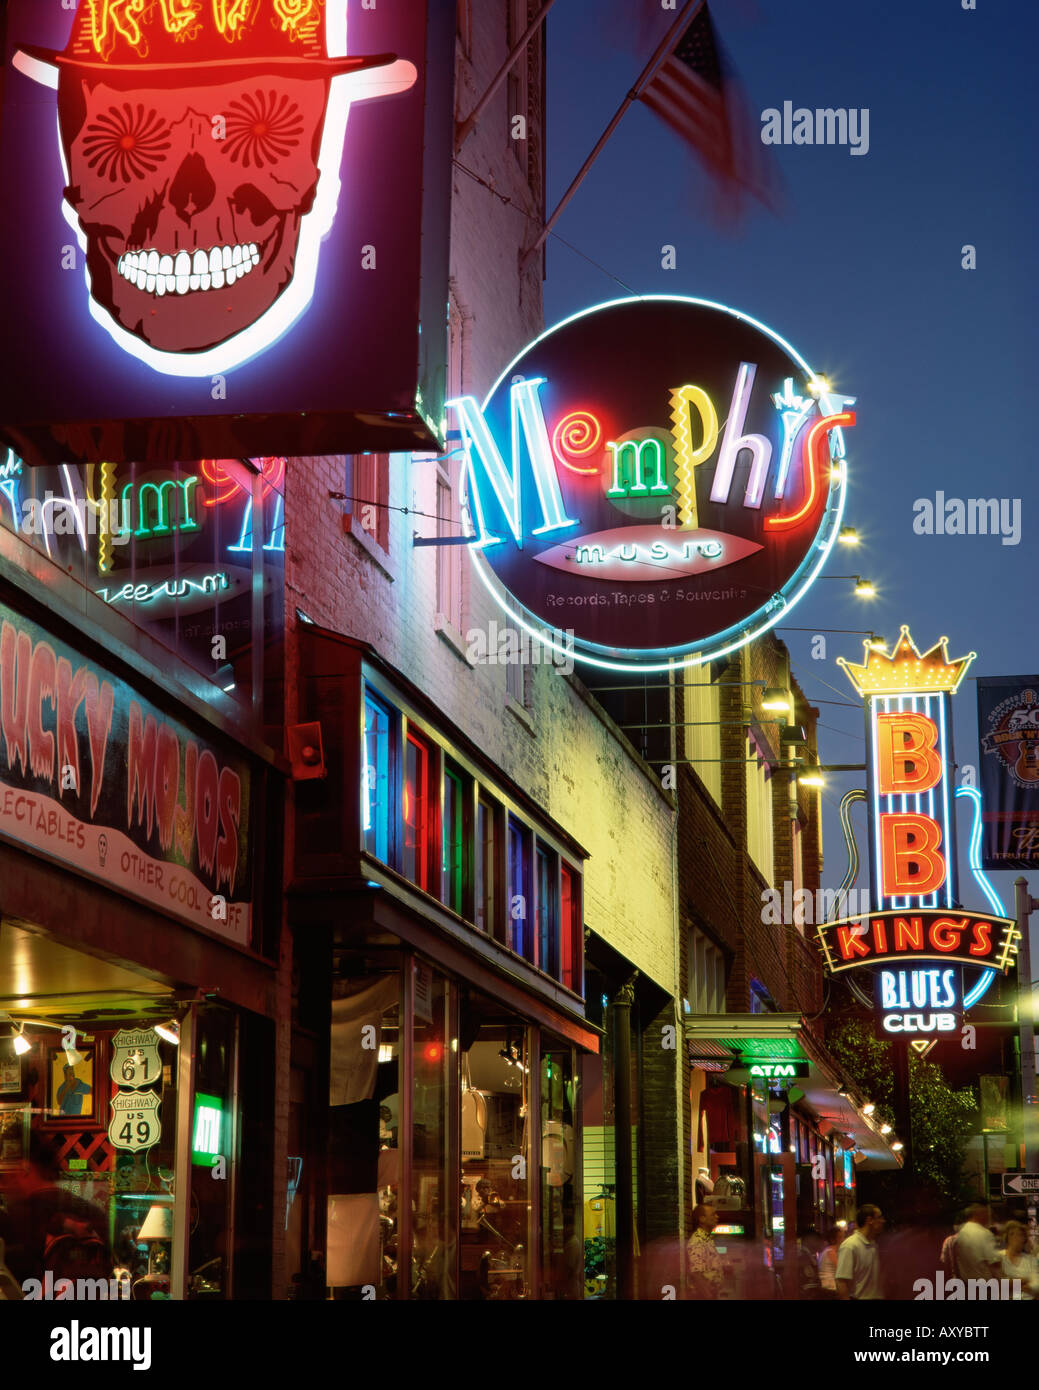 The famous Beale Street at night, Memphis, Tennessee, United States of America, North America - Stock Image